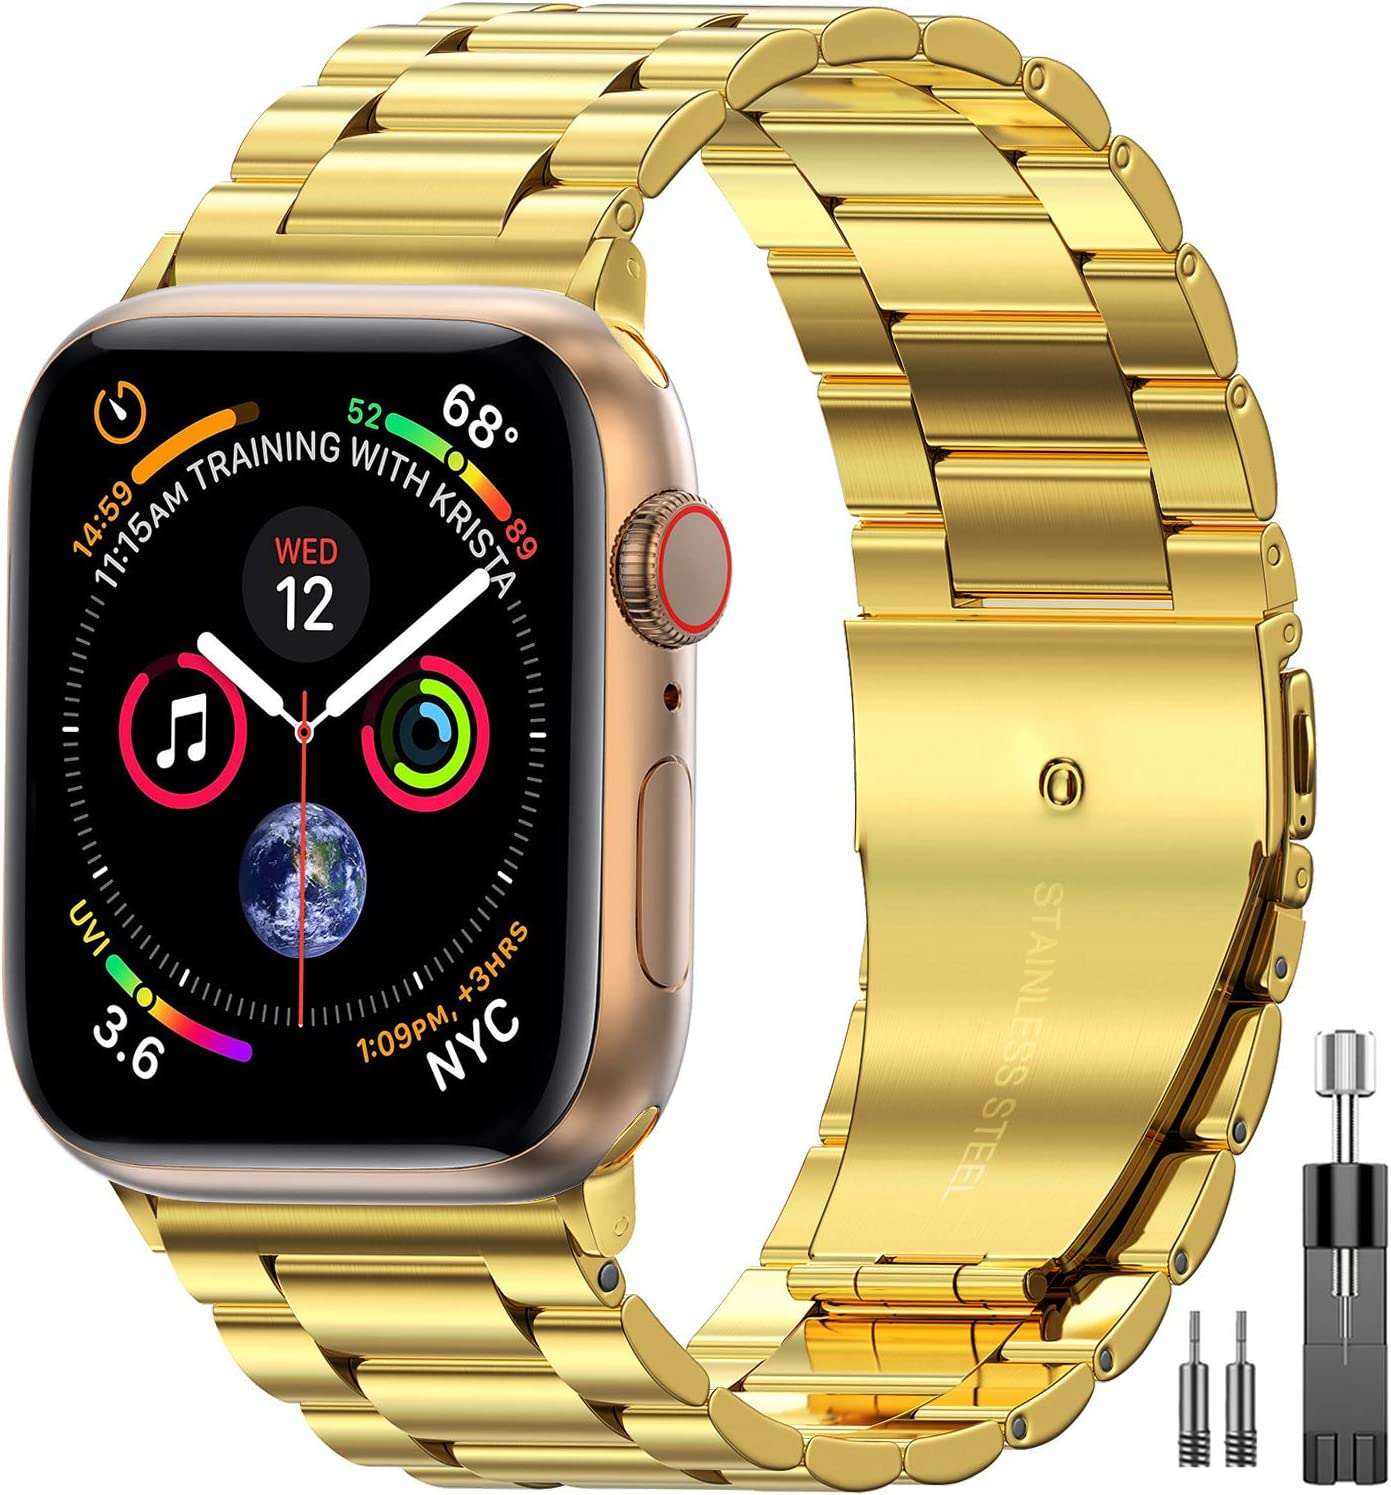 EPULY Compatible with Apple Watch Band 42mm 44mm 38mm 40mm ,Business Stainless Steel Metal Wristband for iWatch SE Series 6/5/4/3/2/1 (Gold, 38mm/40mm)